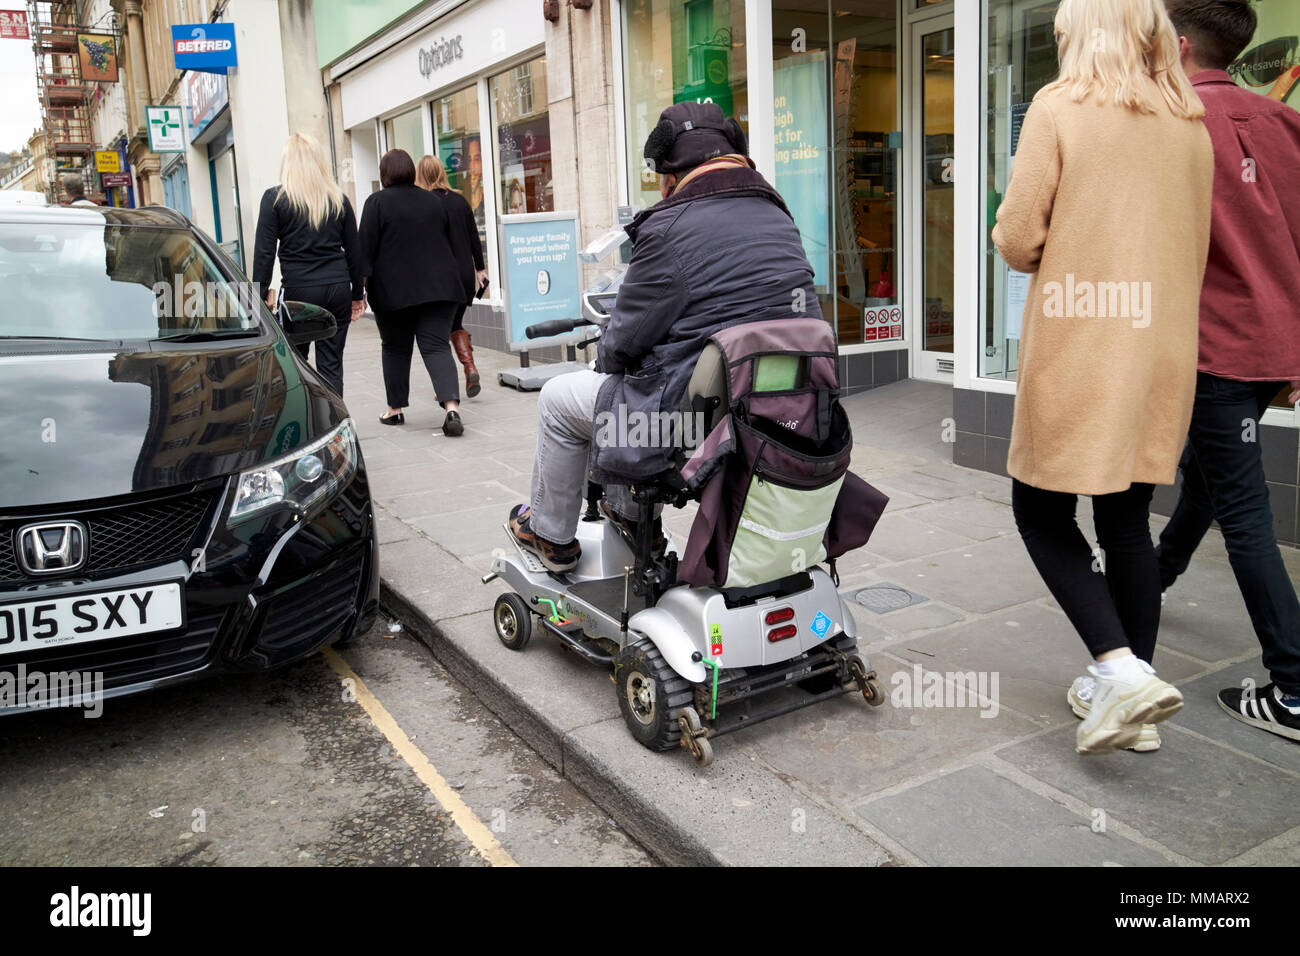 man rides disability scooter on pavement in city centre Bath England UK - Stock Image